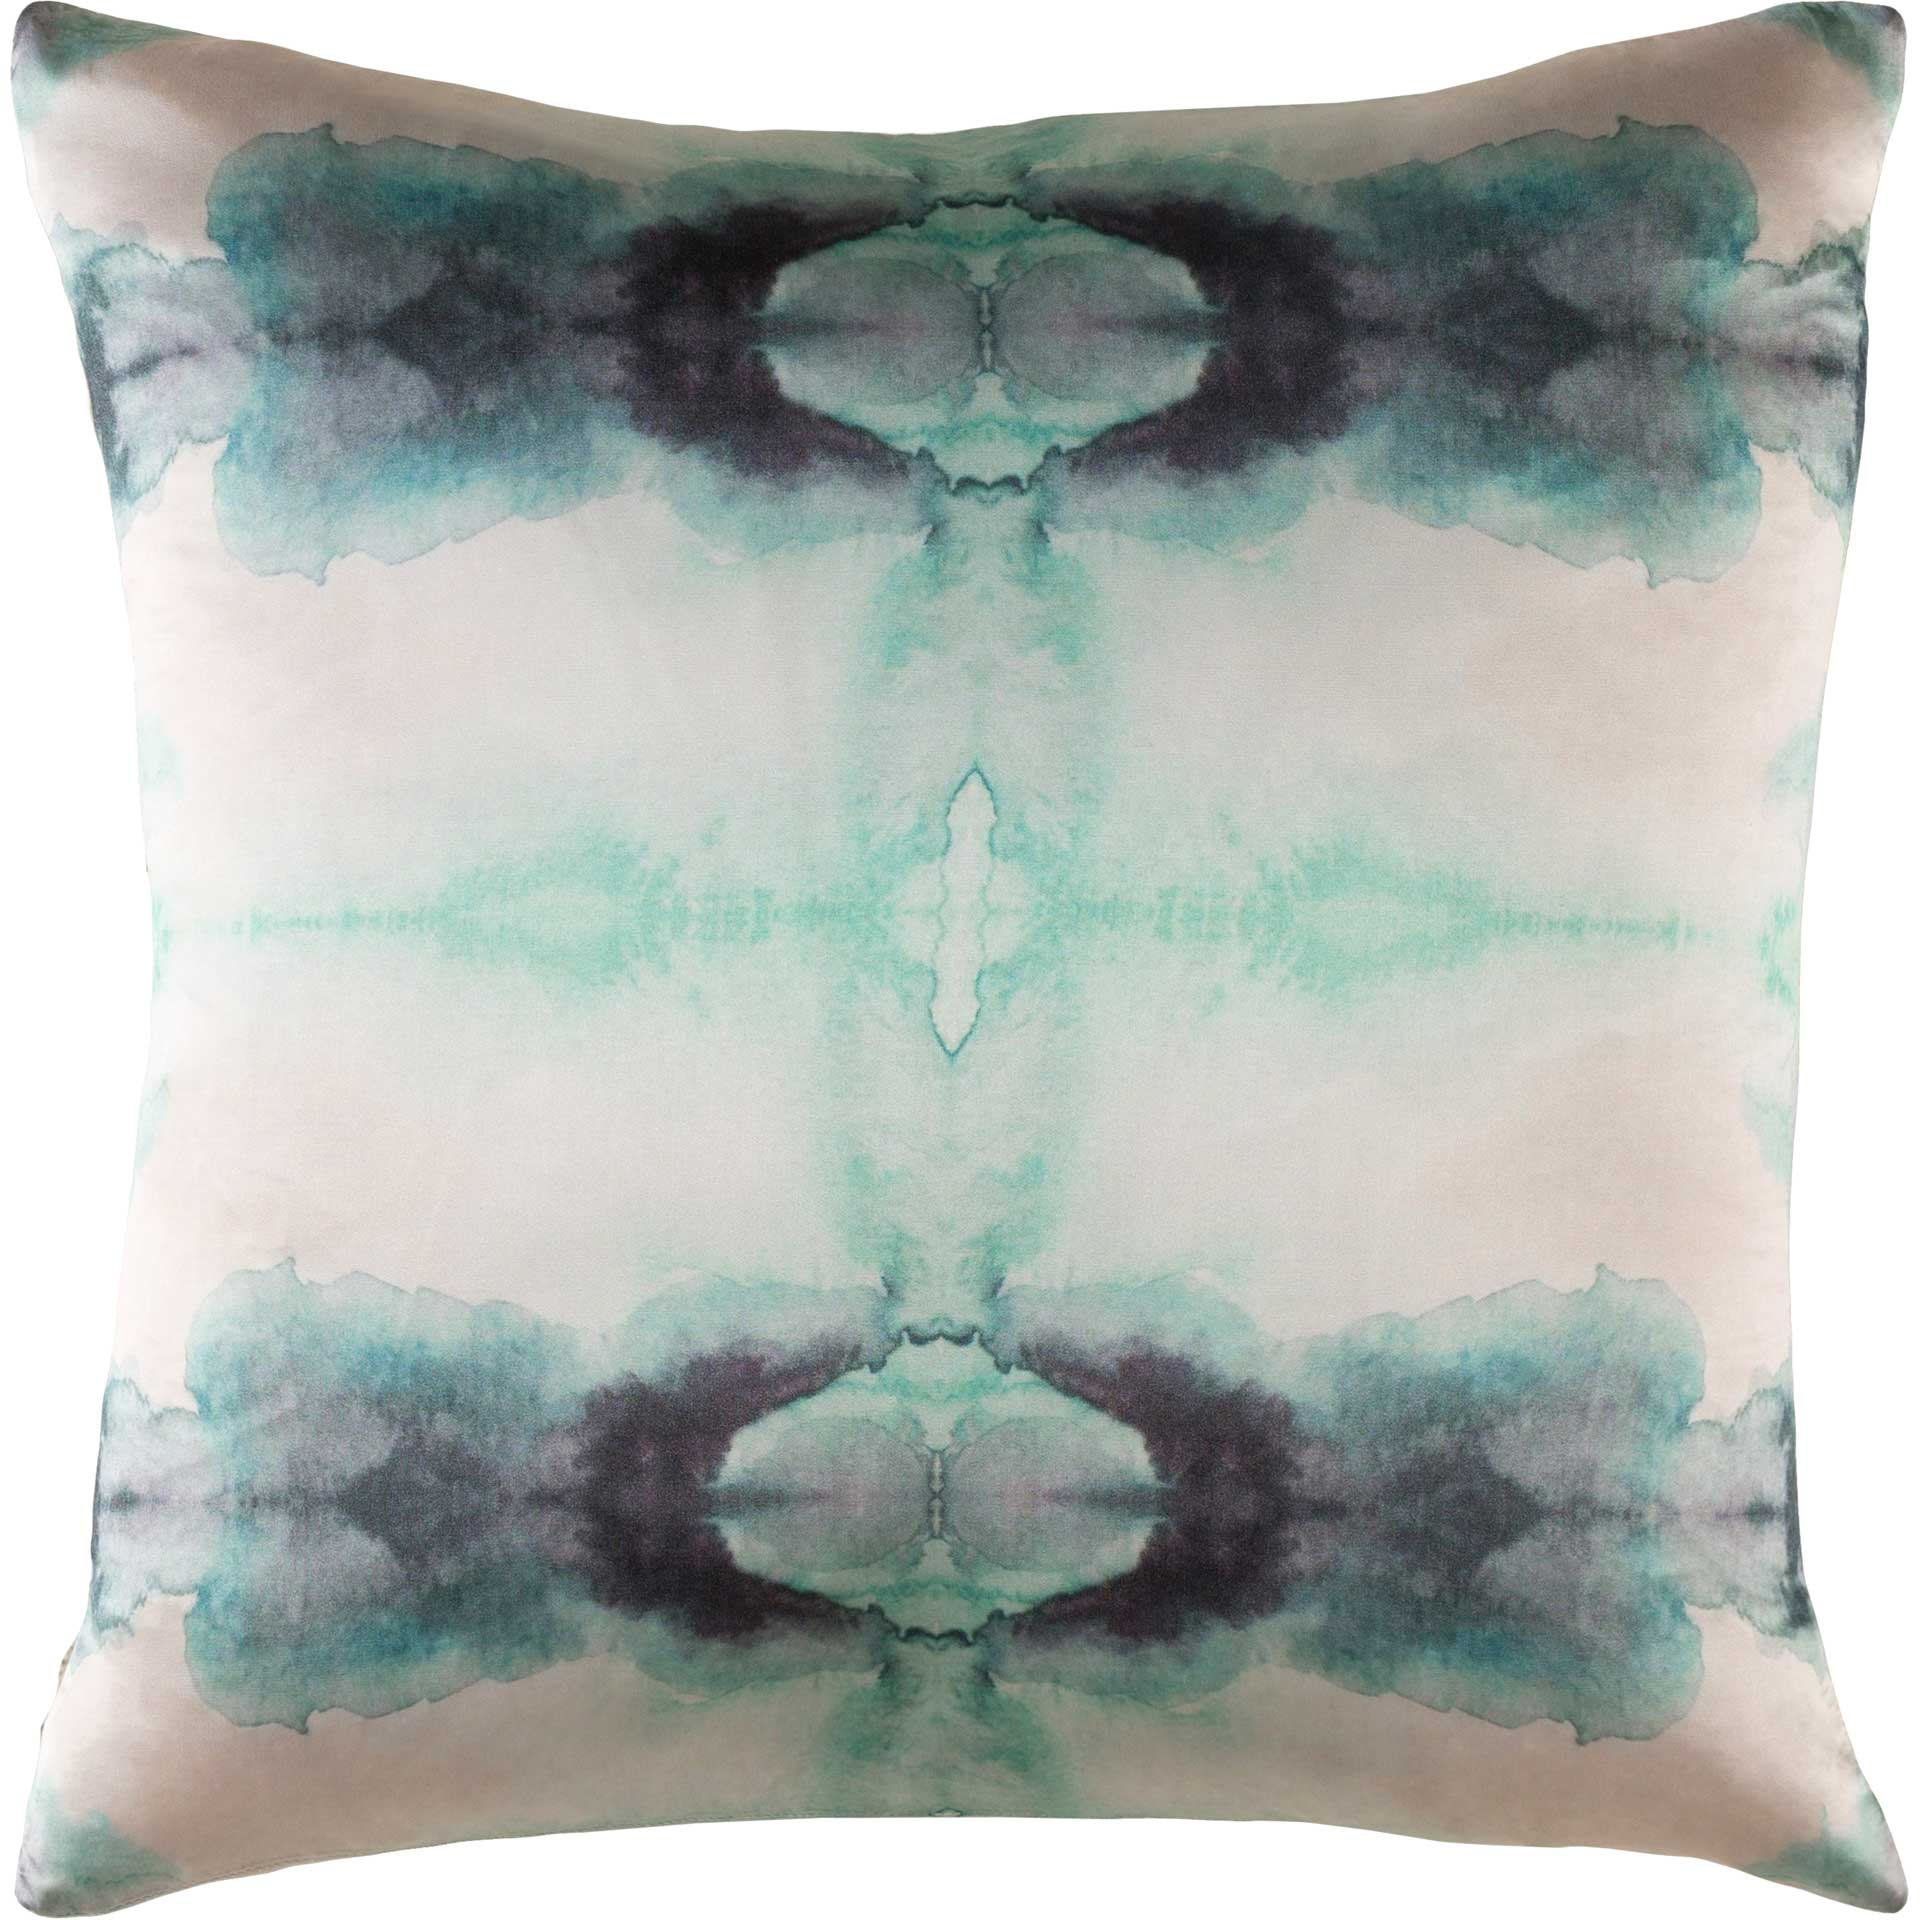 Kadence Pillow White/Mint/Pale Blue